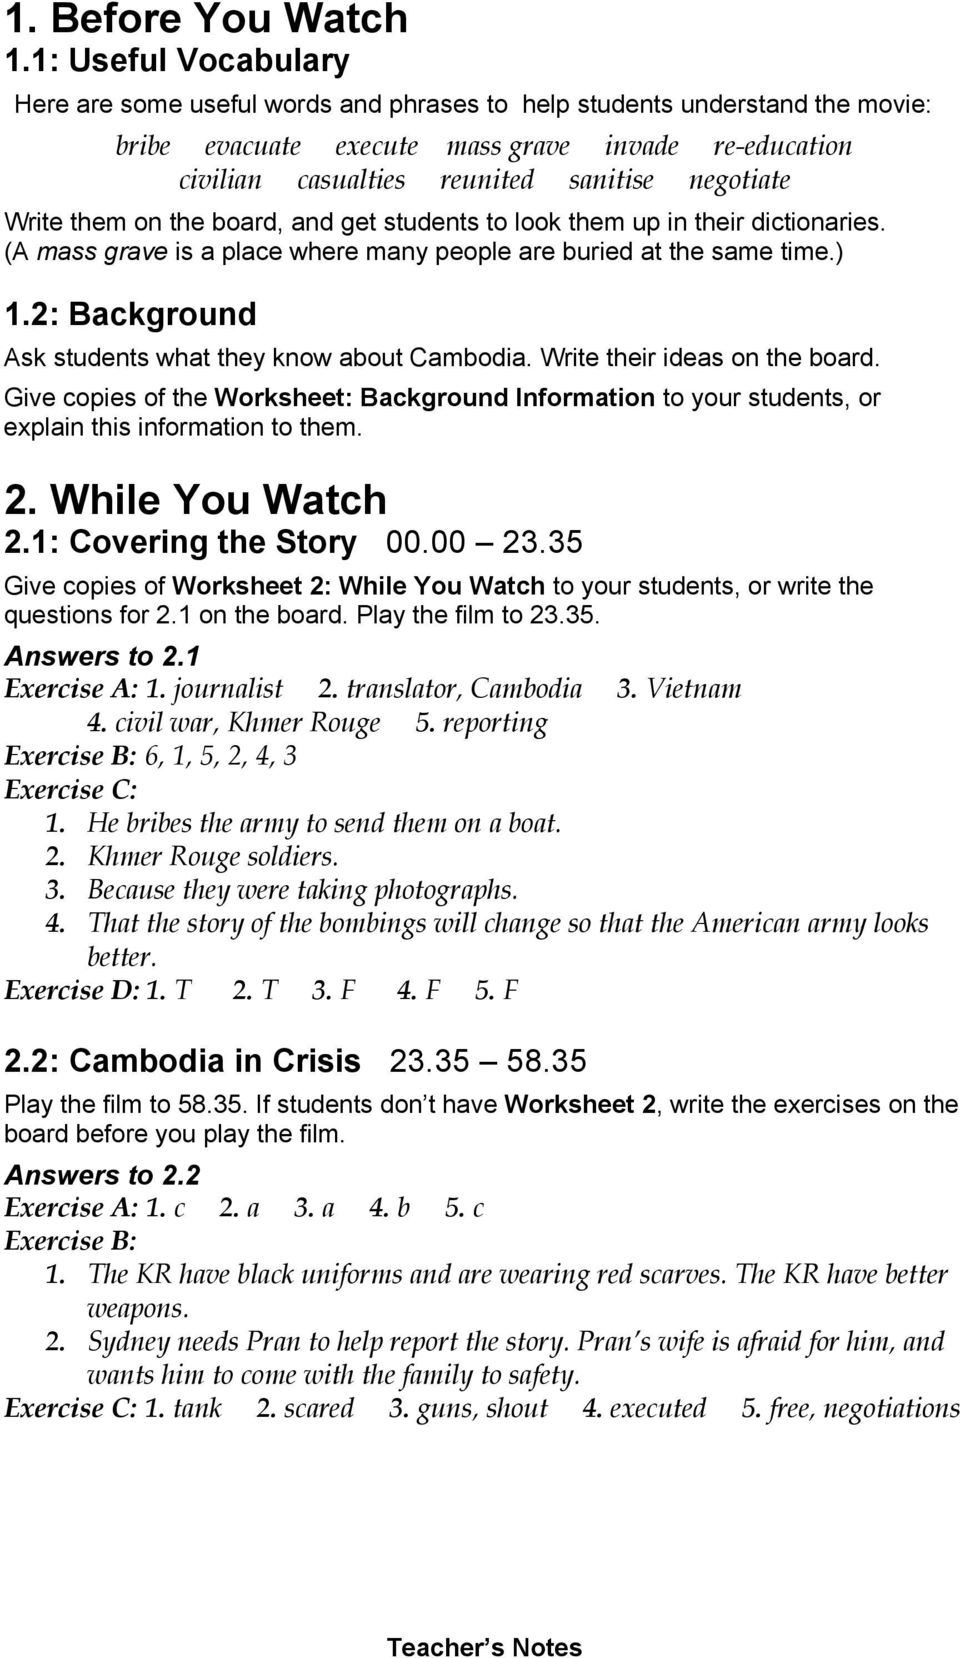 Comprehension And Discussion Activities For The Movie The Killing